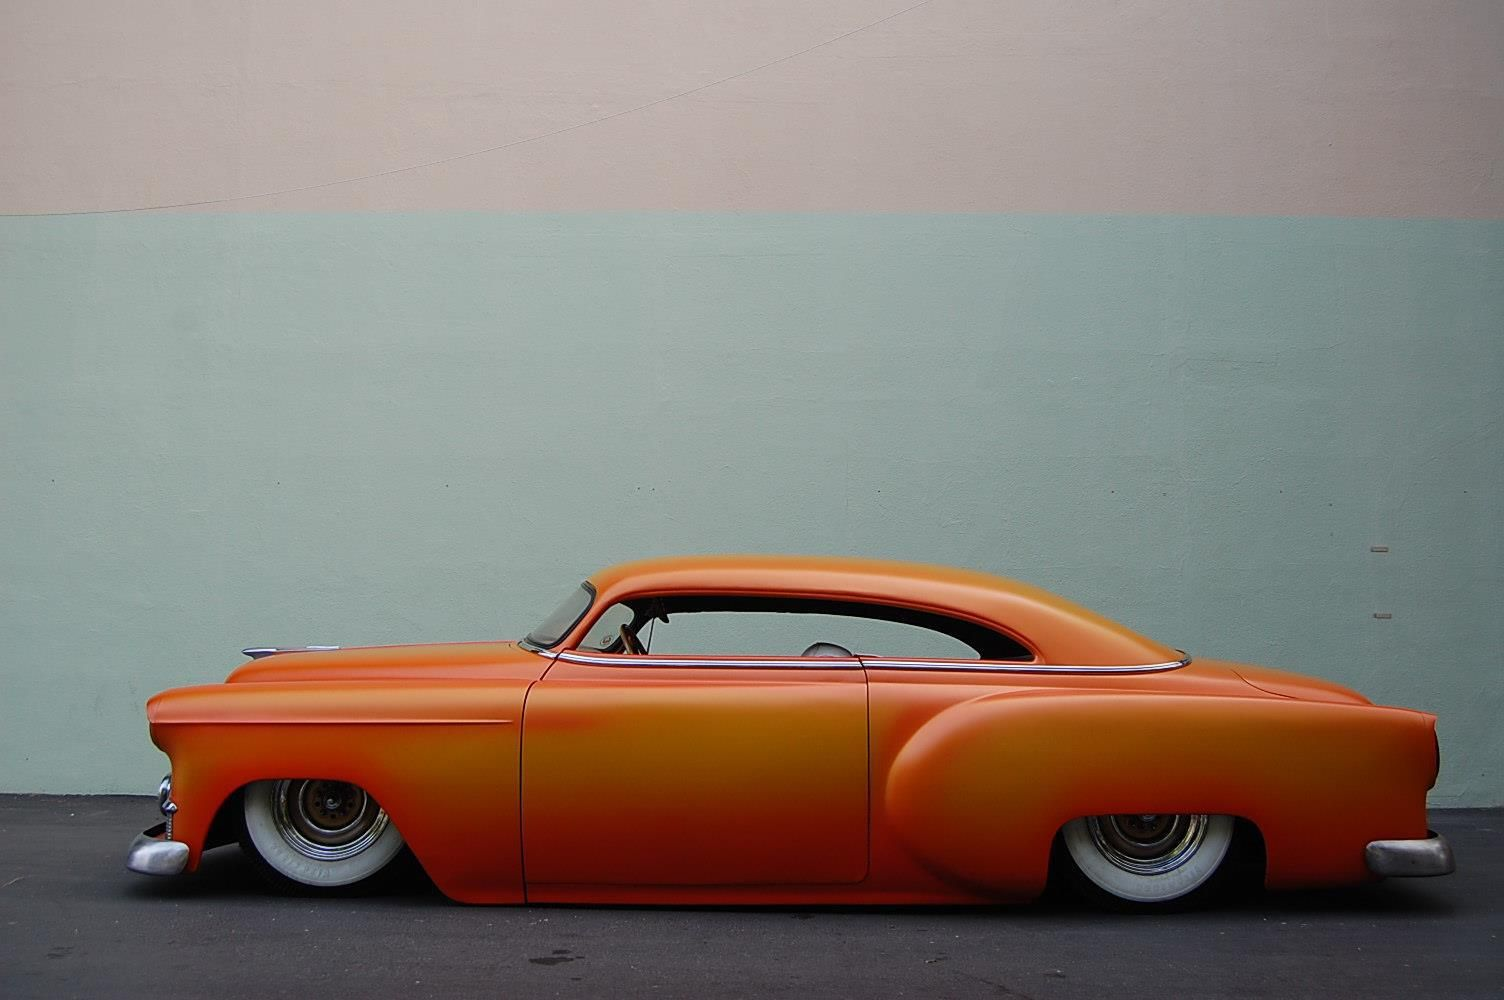 """Low rider drives a little slower…"" (War)….Sometimes fast is simply fast, ride a little lower/slower and see more life."